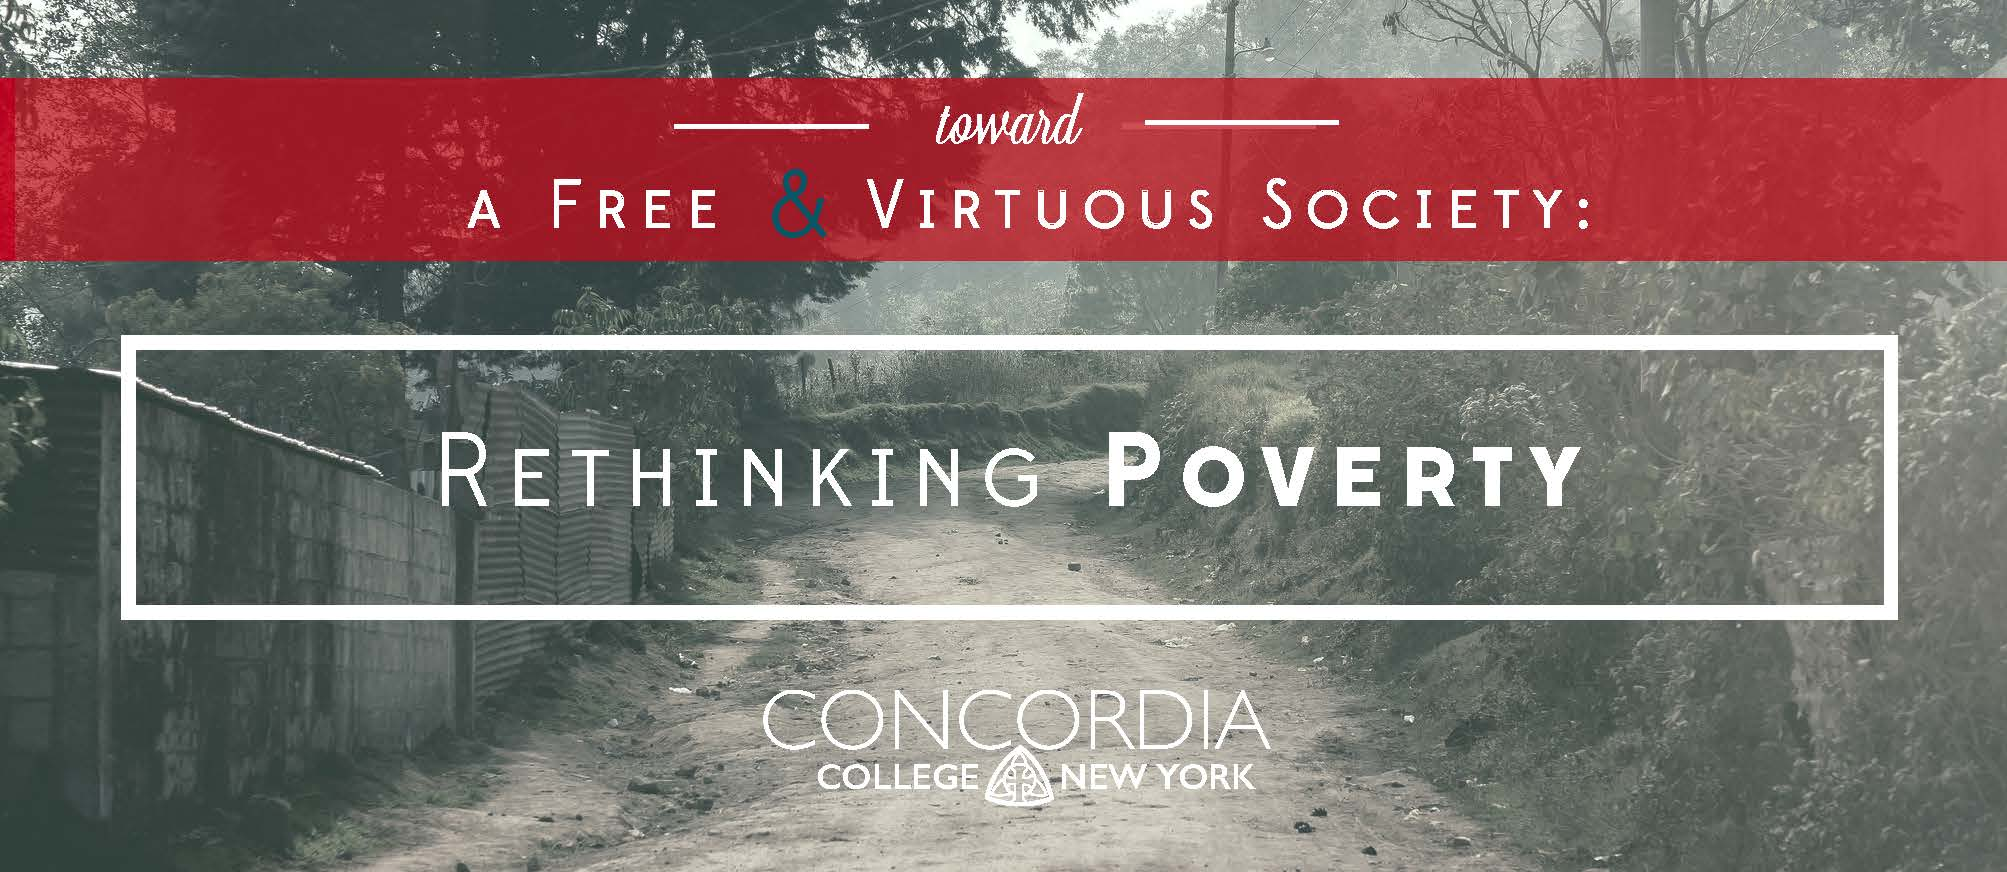 Toward a Free and Virtuous Society: Rethinking Poverty